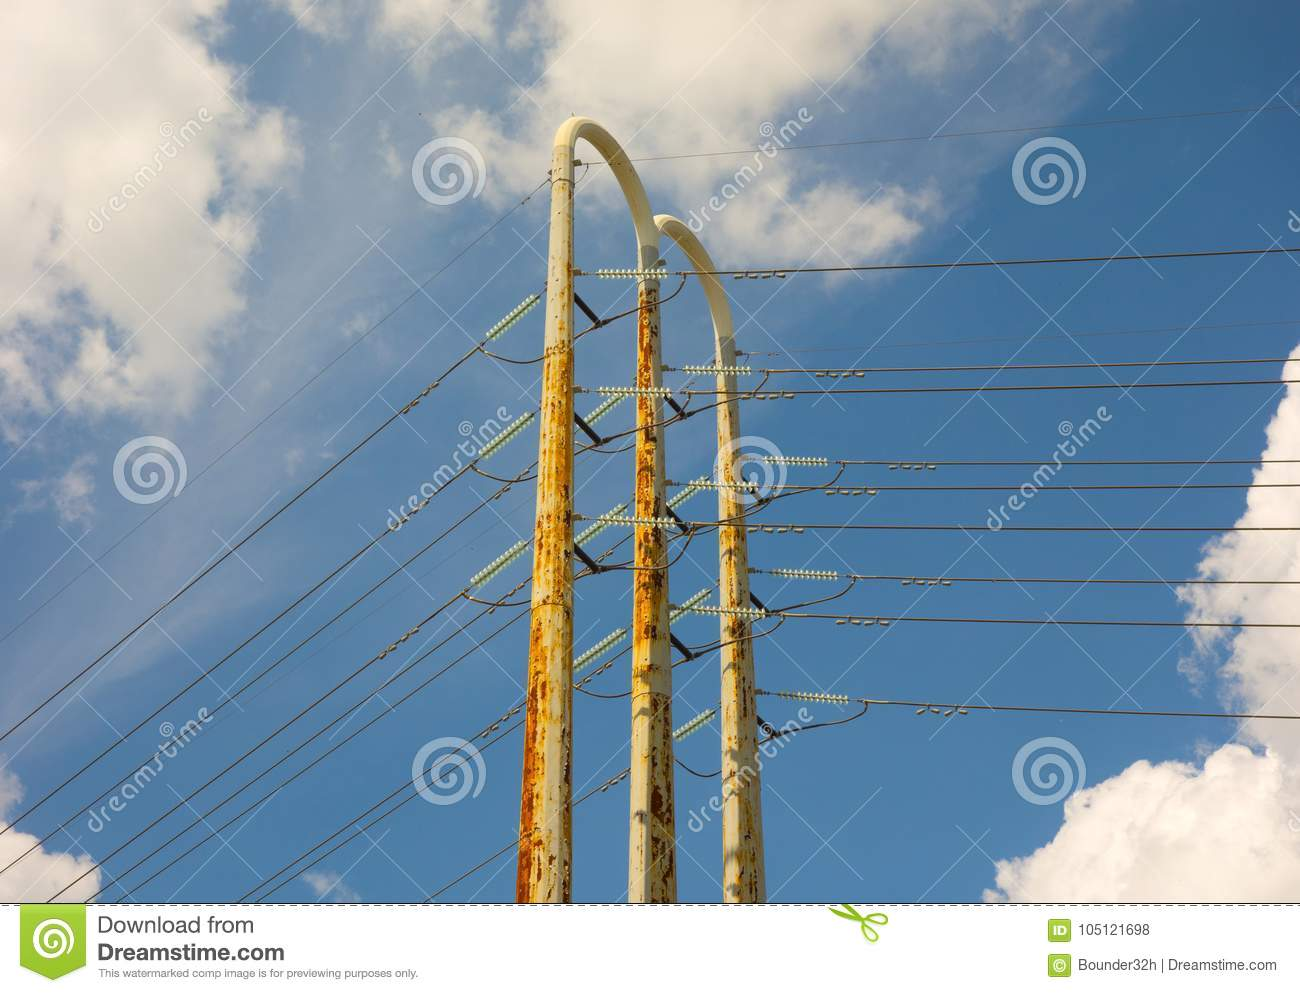 High Tension Wires Against A Blue Summer Sky Stock Photo - Image of ...